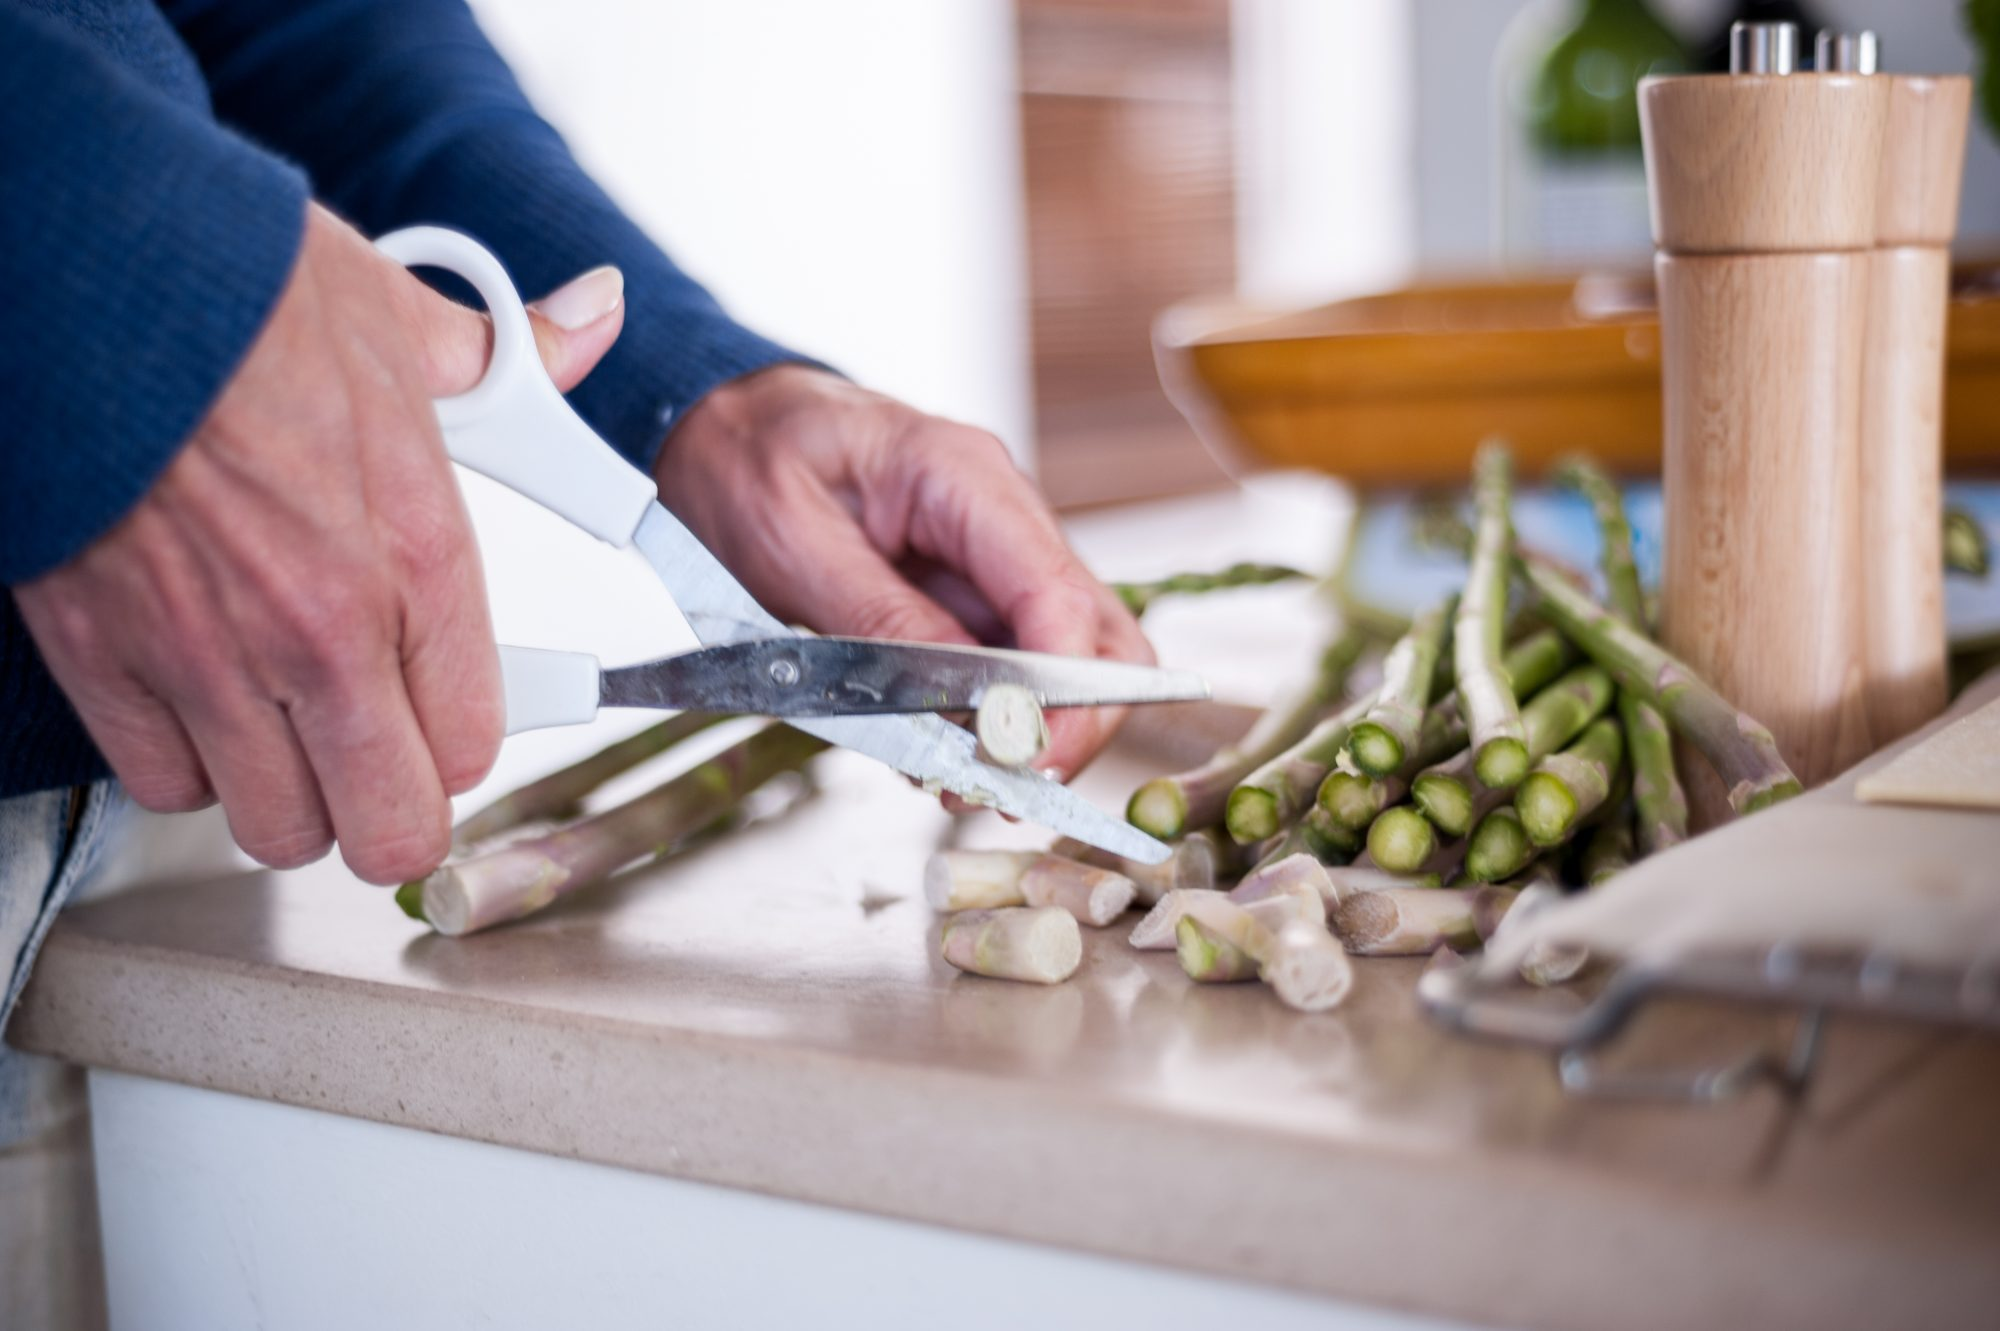 15 Ways to Use Your Kitchen Shears